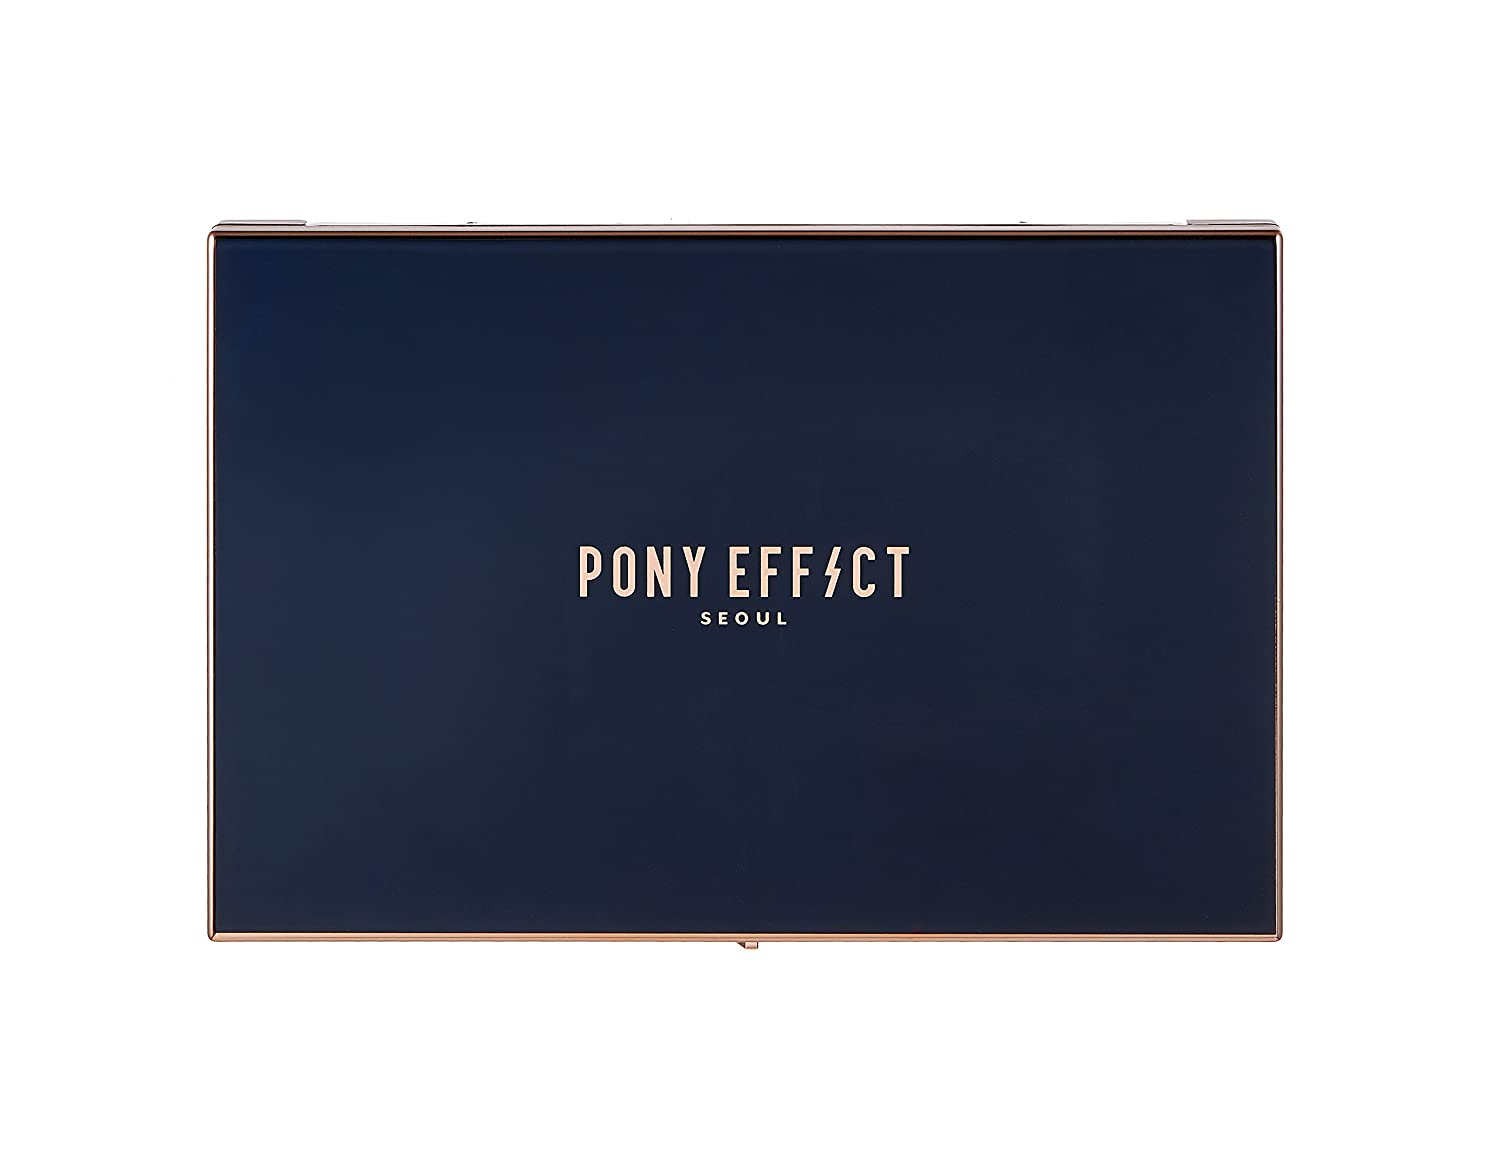 PONY EFFECT Master Eye Palette Matte 11g, 4.5 Ounces, Eyeshadow Palette, Matte formula, Daily Makeup, Must-have color, Natural makeup